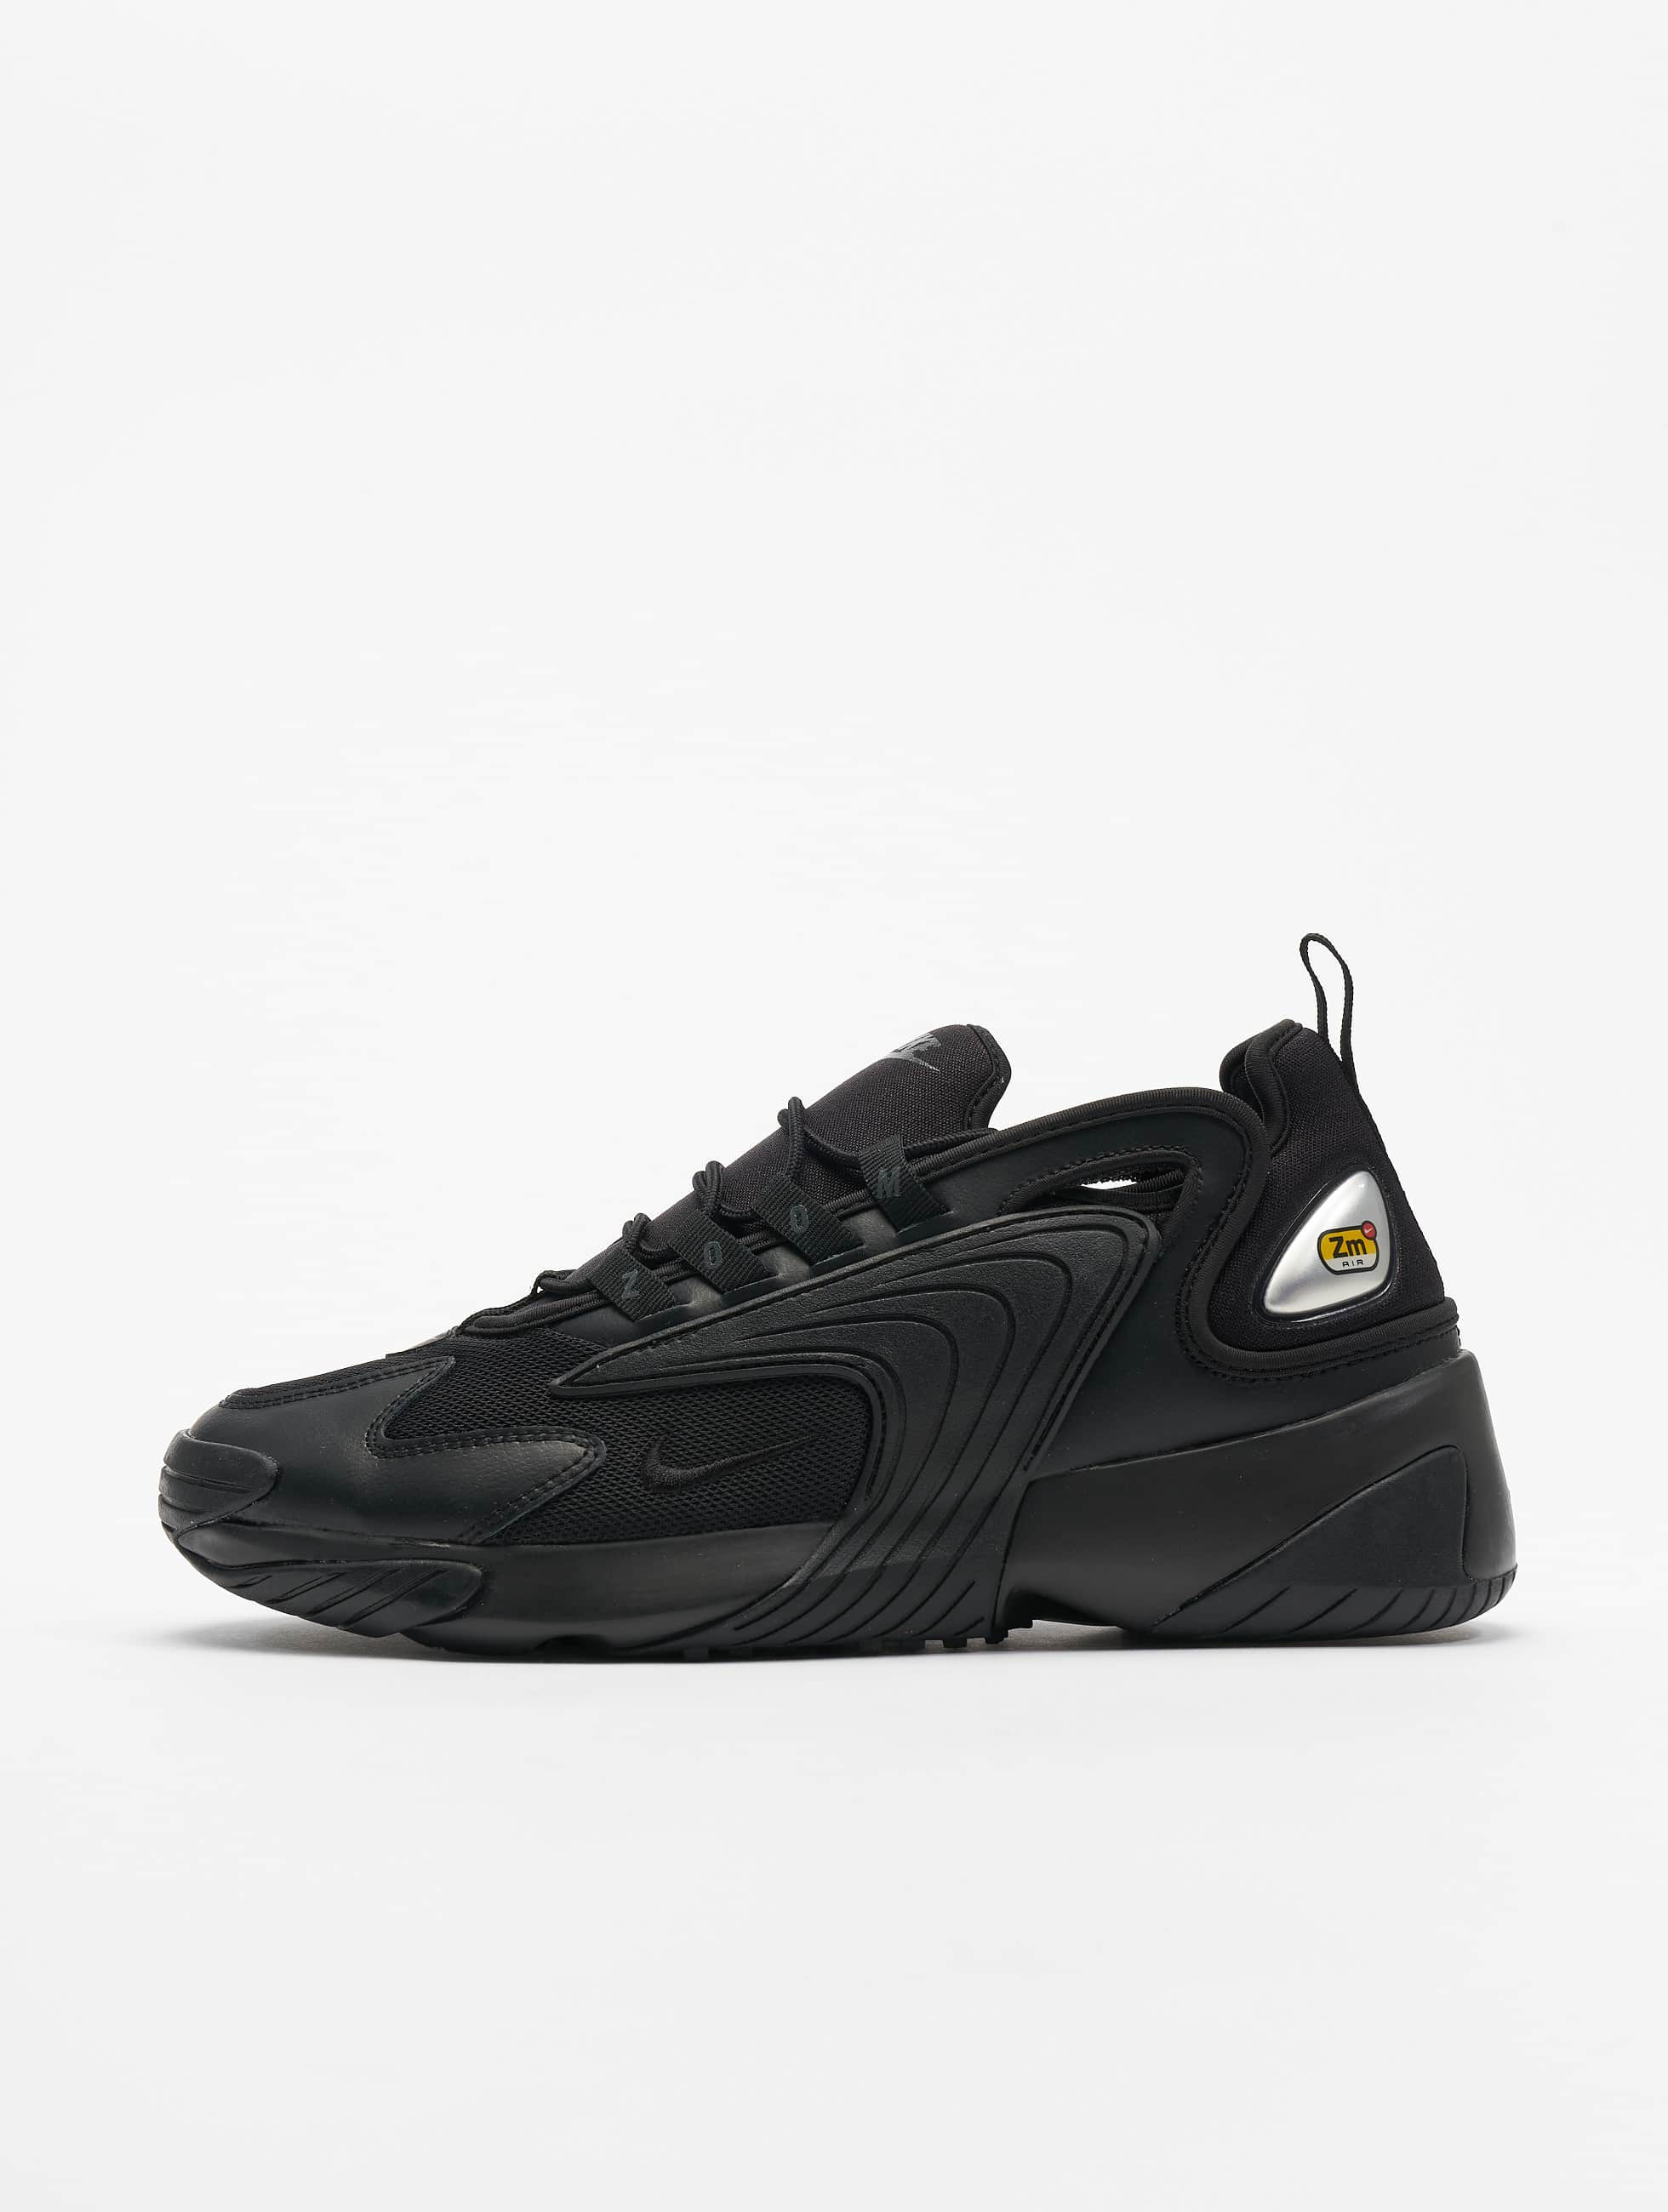 san francisco cute outlet online Nike Zoom 2K Sneakers Black/Black/Anthracite